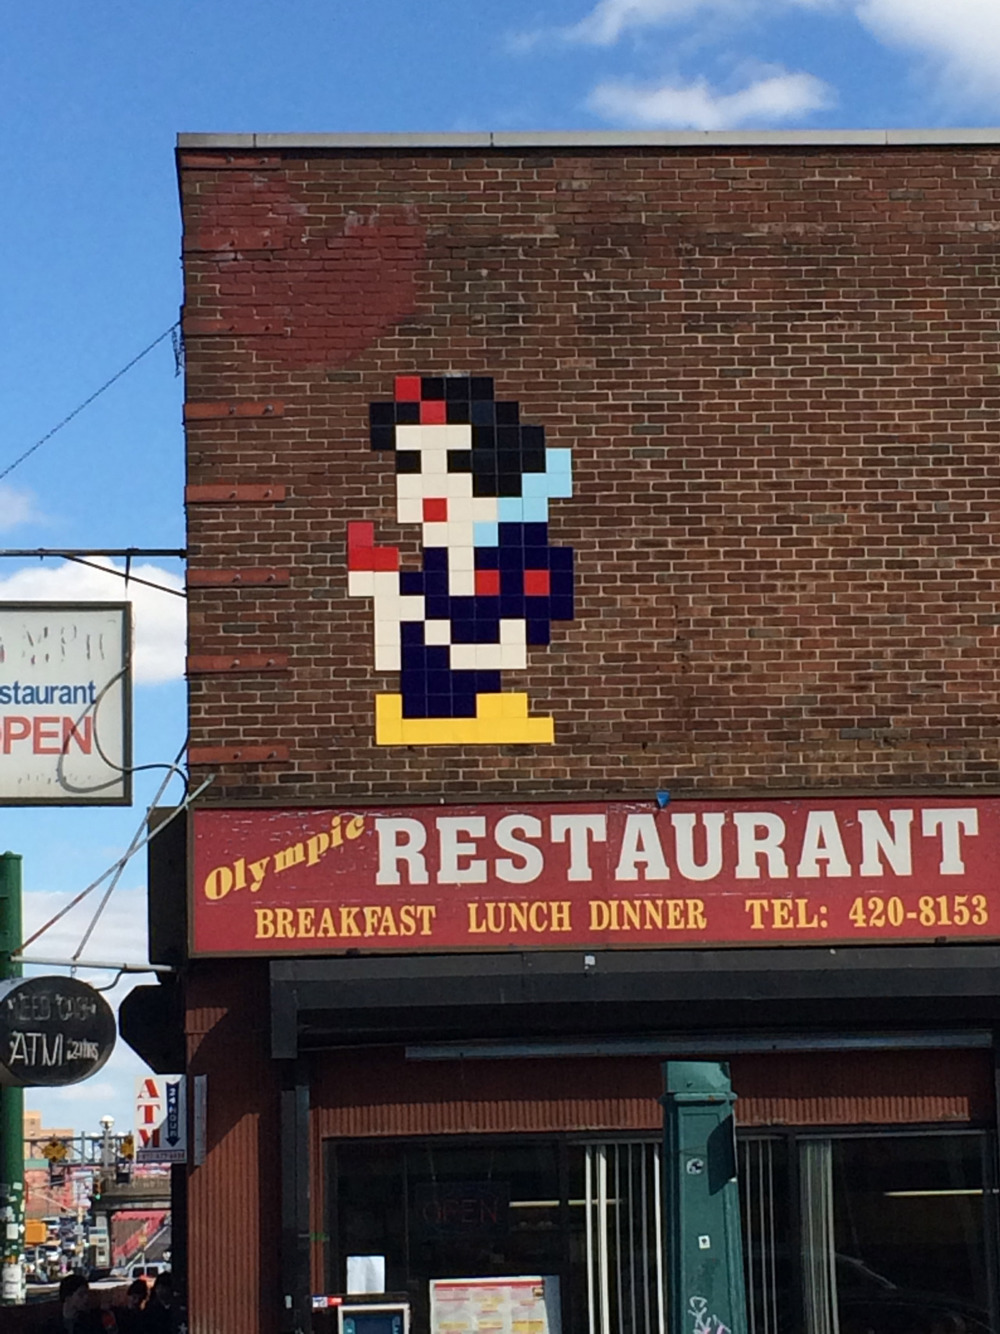 East of Dirty    Space Invader     Snow White and the Poisoned Apple    This character works amazingly well in Invaders trademarked 8-bit tile style. Check it out   Delancy St. Downtown NYC   #invader #spaceinvader #streetart #streetartNCY